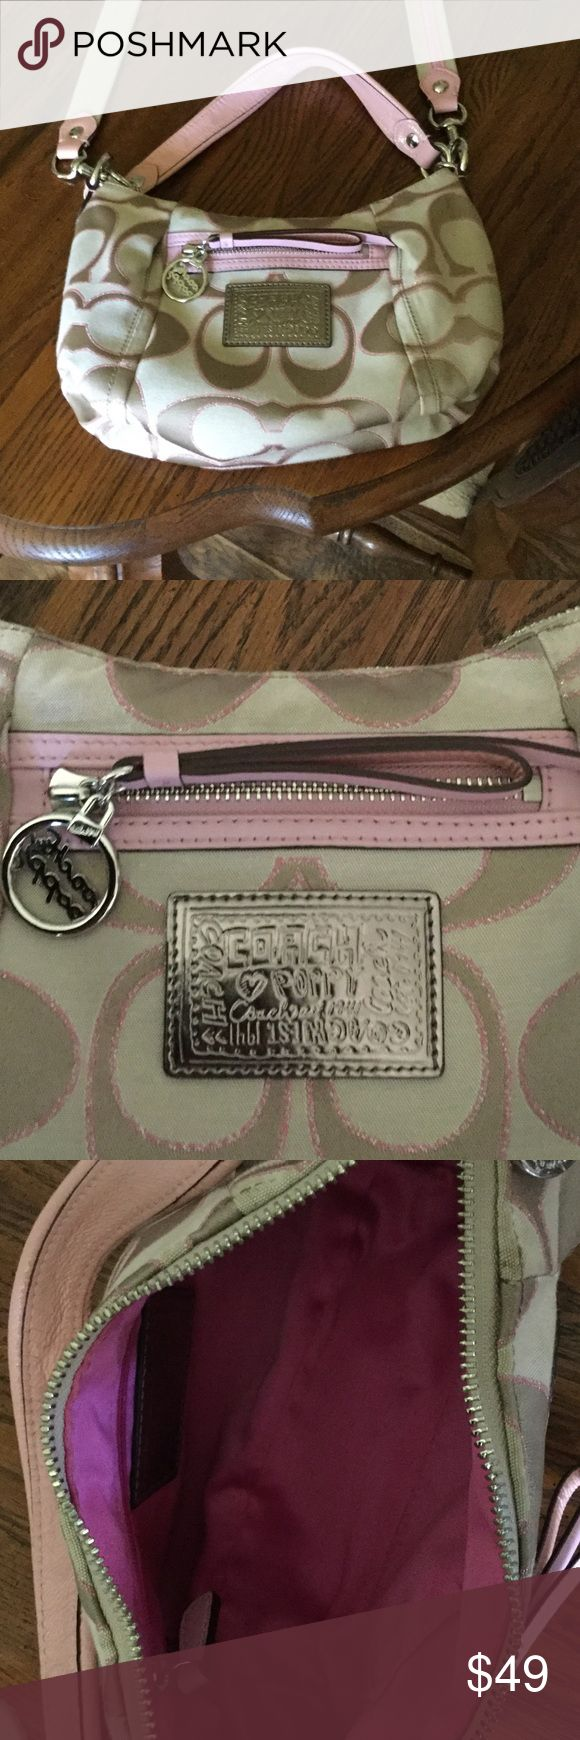 Coach Poppy handbag This is a beautiful Coach Poppy bag that is gold, cream and shimmery pale pink. All hardware is silver. Has full top zipper and smaller zipper in front. Interior is pink satin with zipper pouch and larger cell pocket. This bag is in perfect condition with no stains, rips or any damage whatsoever!  Also comes with long strap that is tan with thin pink ribbon.  Beautiful. Coach Poppy Bags Shoulder Bags